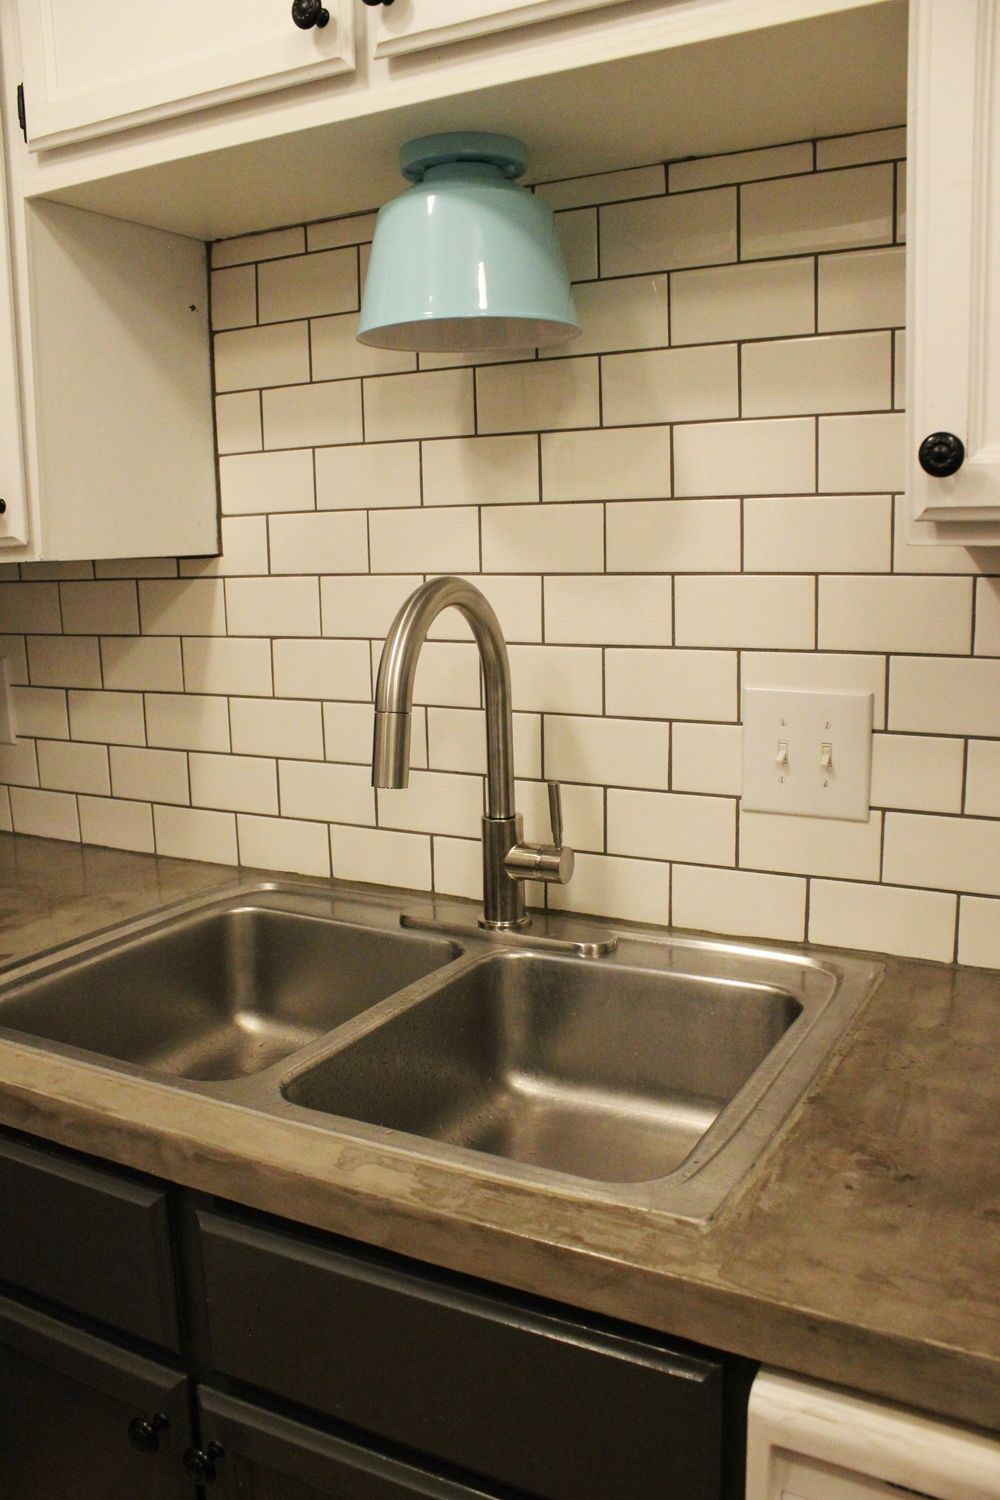 Update your kitchen with a new faucet